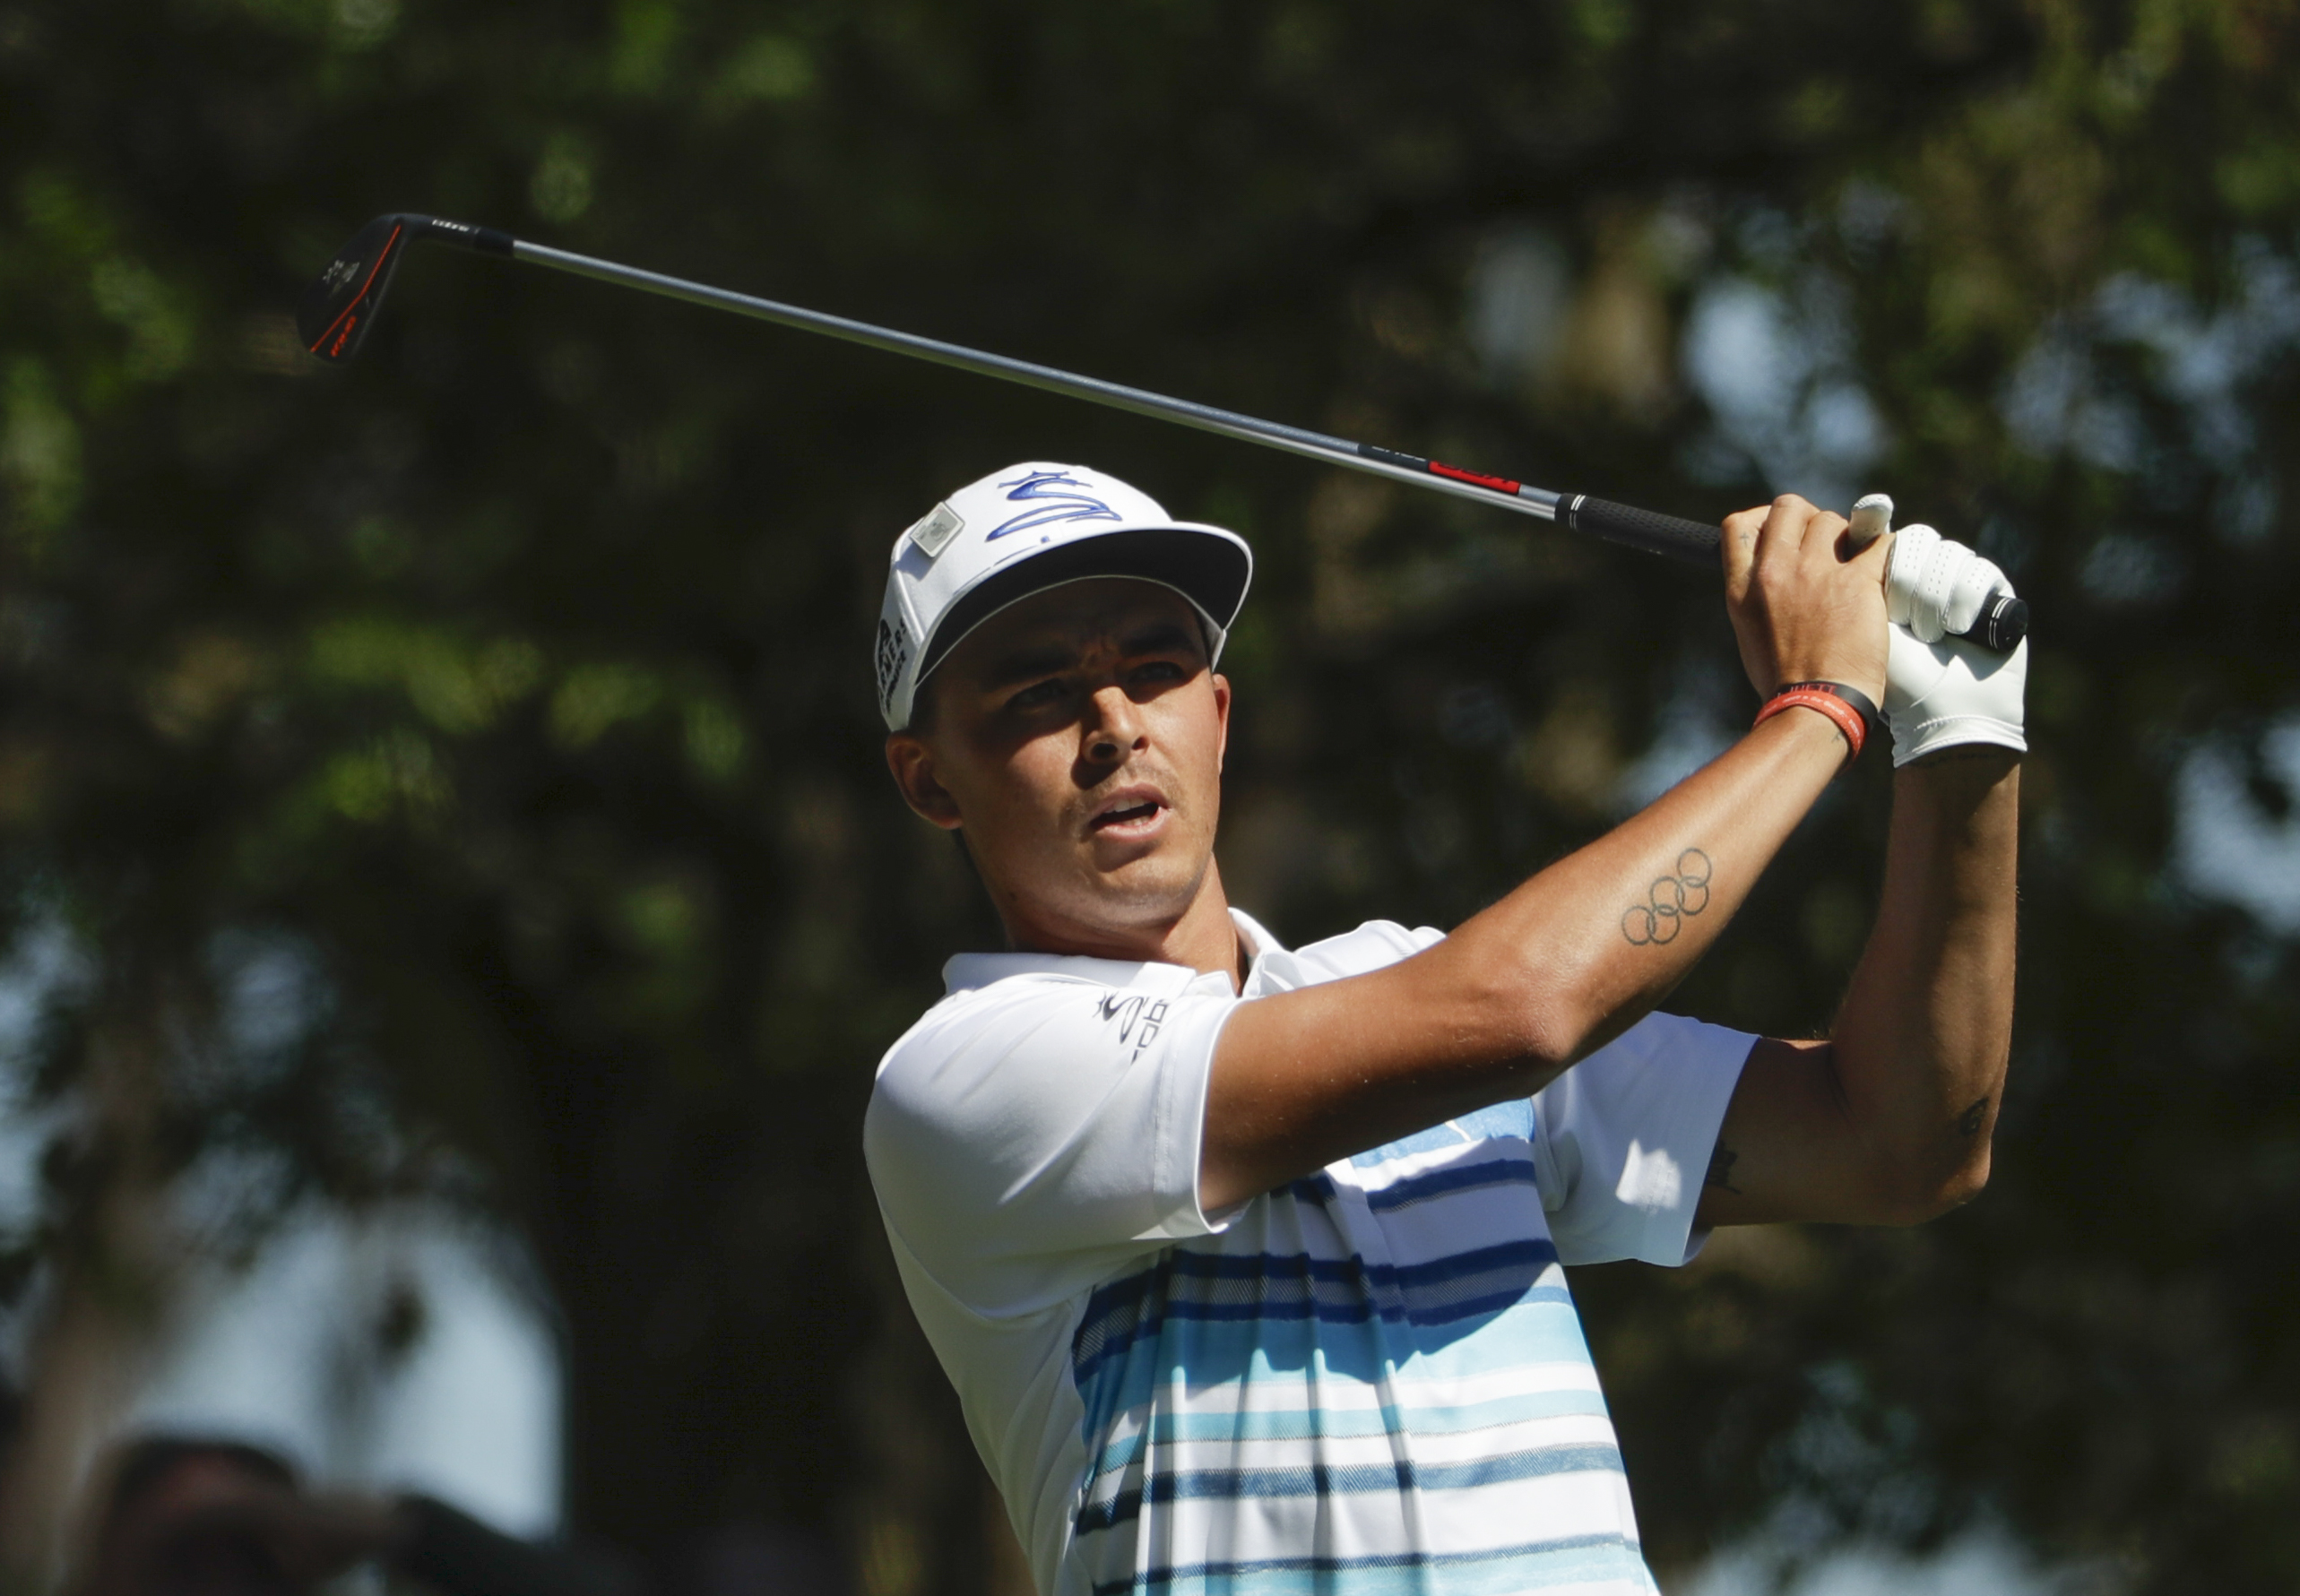 Rickie Fowler hits a drive on the fourth hole during the third round of the Masters golf tournament Saturday, April 8, 2017, in Augusta, Ga. (AP Photo/David Goldman)